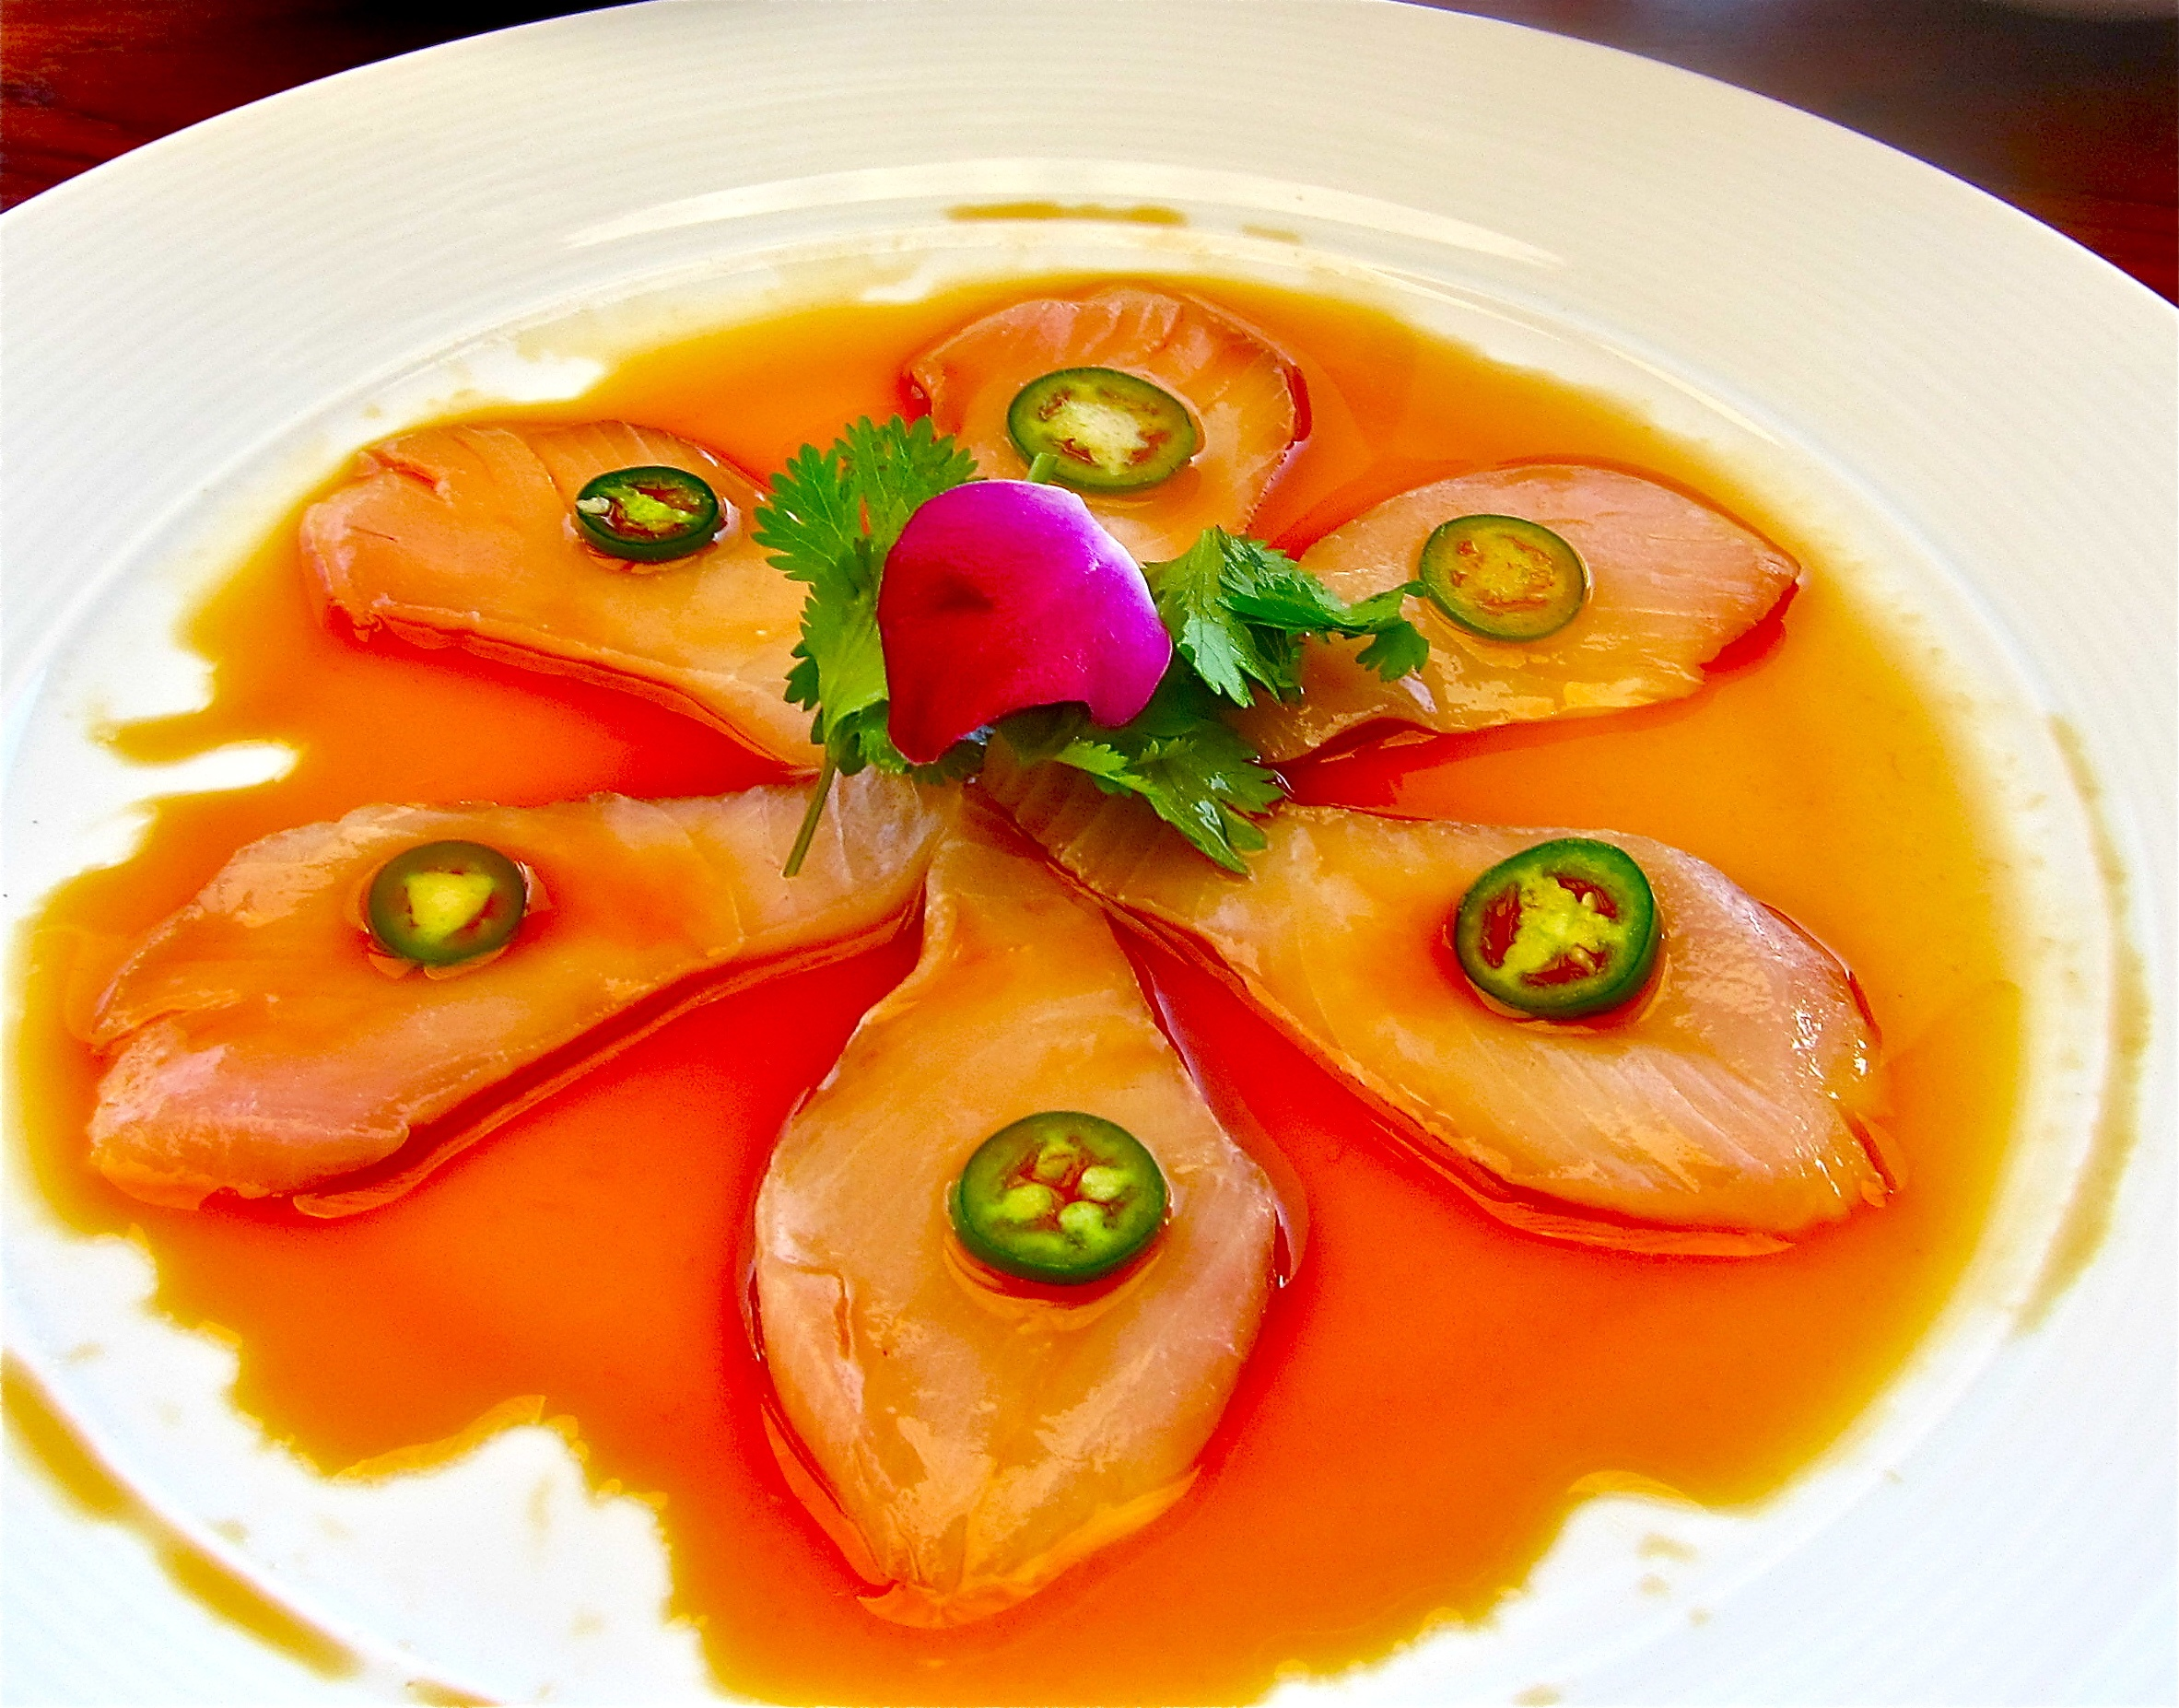 yellowtail sashimi with jalapeno peppers